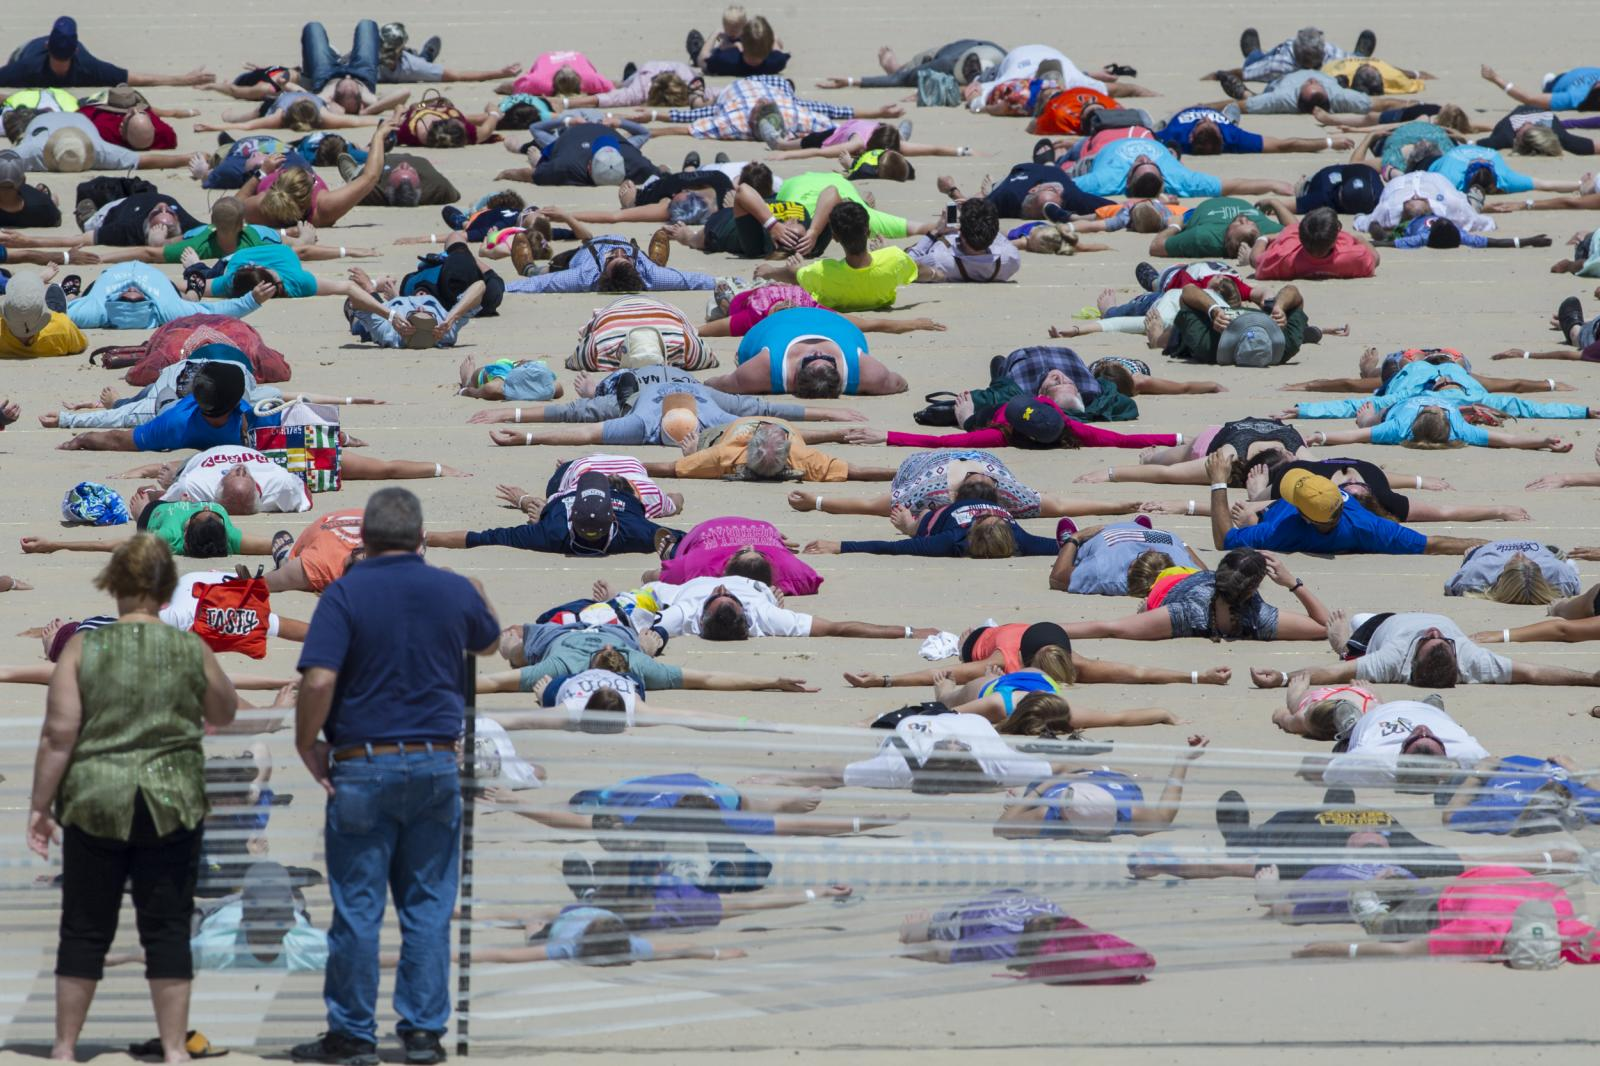 1,414 participate in the Guinness World Record attempt for simultaneously making sand angels at Stearns Park Beach on June 10, 2017 in Ludington, Mich. Ludington officially broke the record with 1,387 people, 27 people were disqualified for various reasons. The previous record was held by Pembrokeshire, United Kingdom, with 352 people simultaneously making sand angels on June 6, 2015.